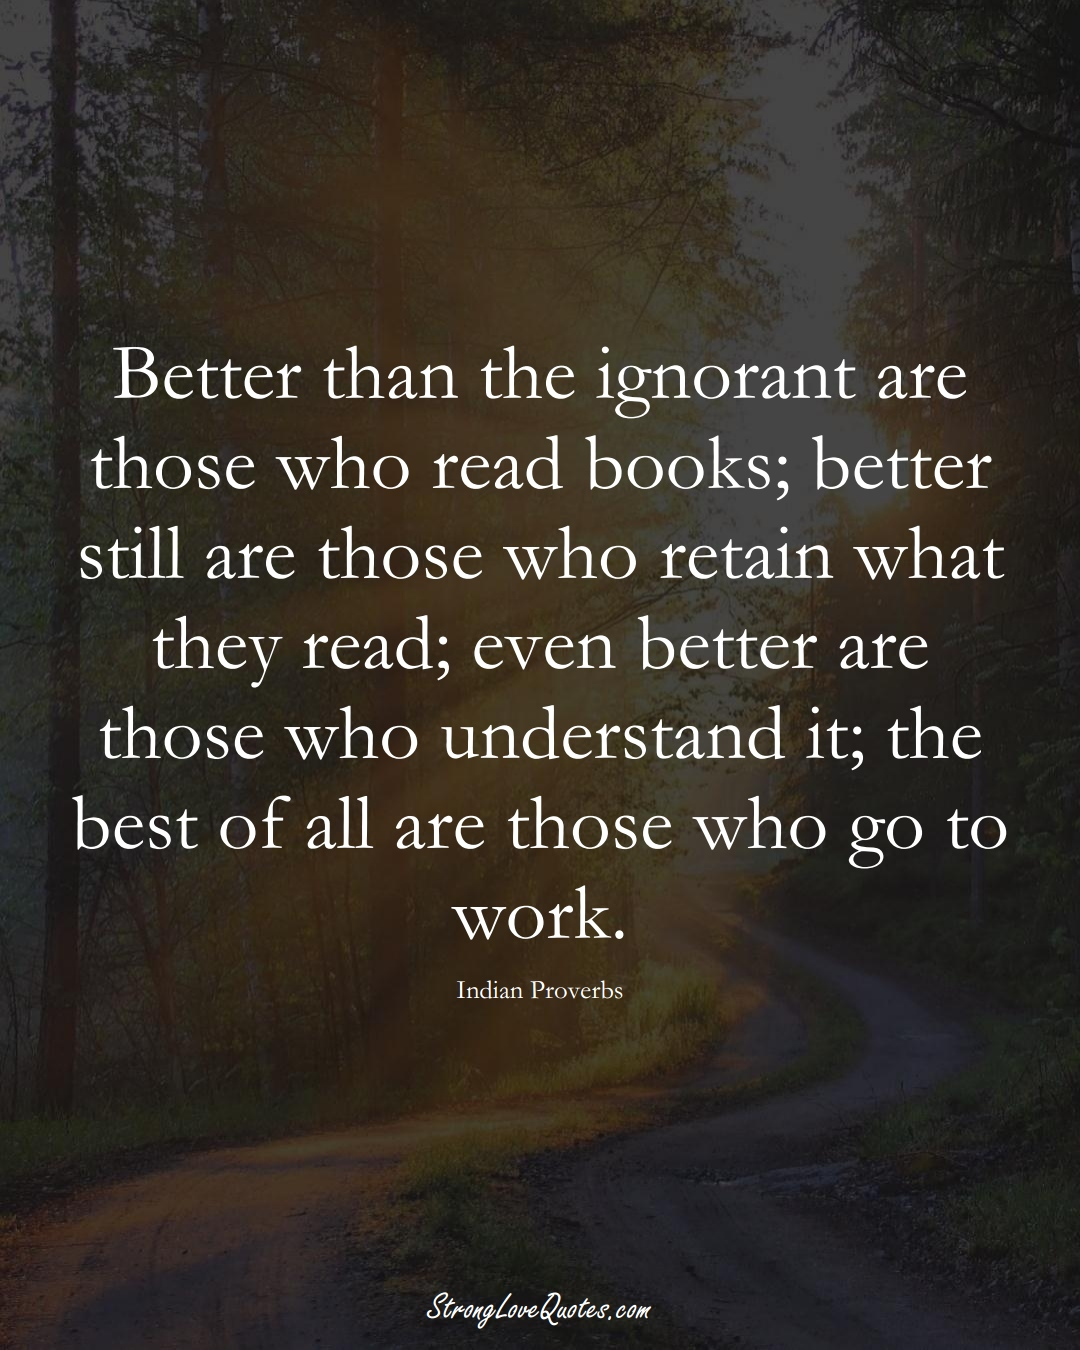 Better than the ignorant are those who read books; better still are those who retain what they read; even better are those who understand it; the best of all are those who go to work. (Indian Sayings);  #AsianSayings